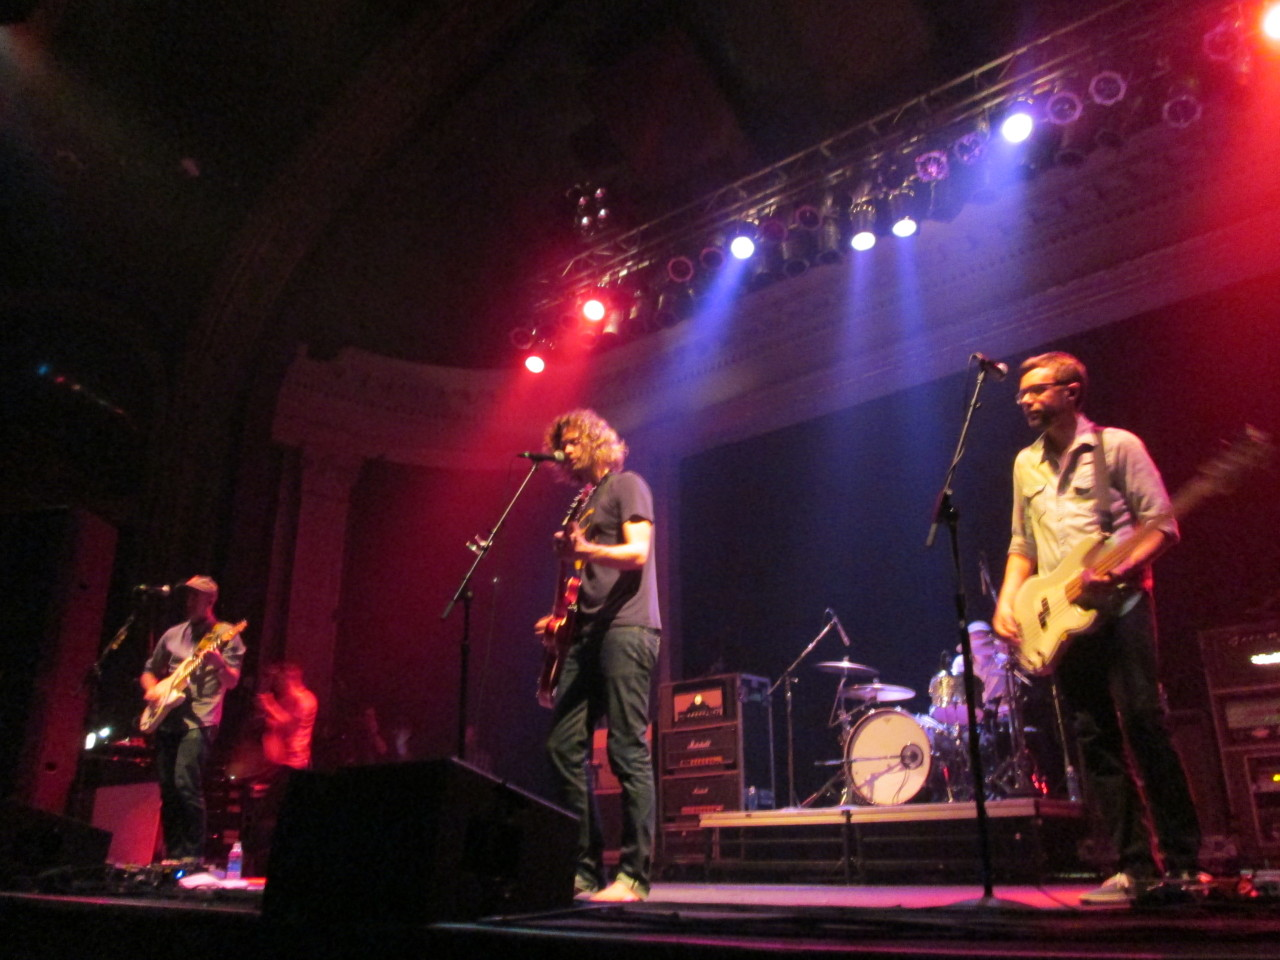 "Relient K made their way back to their home state of Ohio on May 14 to play in Columbus at Newport Music Hall. The band brought Mike Mains & the Branches, William Beckett and Hellogoodbye with them on the tour. Mike Mains & the Branches opened the show promptly at 7.  The band played a set of six songs, a few of which were from their upcoming album, ""Calm Down, Everything is Fine."" The band got the crowd involved with their set, having the audience echo lead singer, Mike Mains, for the chorus of their new song, ""Calm Down, Everything is Fine."" After Mike Mains & the Branches was William Beckett. Beckett, formerly of The Academy Is…, entered the stage alone, armed with only a guitar and his ""band in a box"" (aka a MacBook Pro). Beckett played the guitar parts in his six songs while the ""band in a box"" played the recordings of the other instruments. Beckett engaged the crowd as well telling a story about a basketball match he had on his first day of sixth grade. Included in his set was a new song titled, ""Benny & Joon"" from his upcoming album that should be released later this year. During Beckett's final song, ""Great Night,"" Matt Thiessen, lead singer of Relient K, came out to sing with Beckett. After Beckett was Hellogoodbye. The band played a total of 10 songs for the crowd. Just like Mike Mains & the Branches and Beckett, Hellogoodbye got the crowd involved with their songs. It was Wiz's birthday so the audience, and the other members of Hellogoodbye sang ""Happy Birthday"" to the keyboard player. Hellogoodbye ended their 10 song set with their most popular, ""Here (In Your Arms)"" where the venue was filled with voices singing along. Finally, it was time for Relient K. The band came out to the entire venue cheering, where they opened their set with the ever-popular ""Who I Am Hates Who I've Been."" Then the band spiraled into a 19 song set. Relient K kept the audience engaged by singing a mix of old and new songs from their upcoming album, ""Collapsible Lung,"" which is set to release in June. Beckett joined Relient K onstage for the new song, ""Boomerang."" Beckett accompanied Theissen on lead vocals and Beckett was as energetic as he was when he was in The Academy Is…  and after singing the song, Beckett and Thiessen hugged. The band even had members of the opening bands come out for a cover of the song, ""Motorcycle Drive By"" which is originally by Third Eye Blind. Throughout the show Relient K was happy to be home and always made sure to say that. Their family members were even at the show and Thiessen dedicated ""Savannah"" to his sister, brother-in-law, and their unborn child. Overall, Relient K proved that after 15 years they still know how to bring the house down. William Beckett's set: Compromising Me Scarlett (Tokyo) Dear Life Benny & Joon Dig a Hole Great Night      Hellogoodbye's set: When We First Kissed Finding Something to Do Getting Old Swear You're in Love Coppertone The Magic Hour is Now Oh, It is Love When We First Met Everything is Debatable Here (In Your Arms)          Relient K's set: Who I Am Hates Who I've Been High of 75 Mood Rings In Love with the 80s (Pink Tux to the Prom) Don't Blink Flare Candlelight Sahara The Lining is Silver Boomerang Sweeter Motorcycle Drive By Forget and Not Slow Down Collapsible Lung I Could Take You Home Sadie Hawkins Dance Savannah Which to Bury, Us or the Hatchet Be My Escape Dylanne"